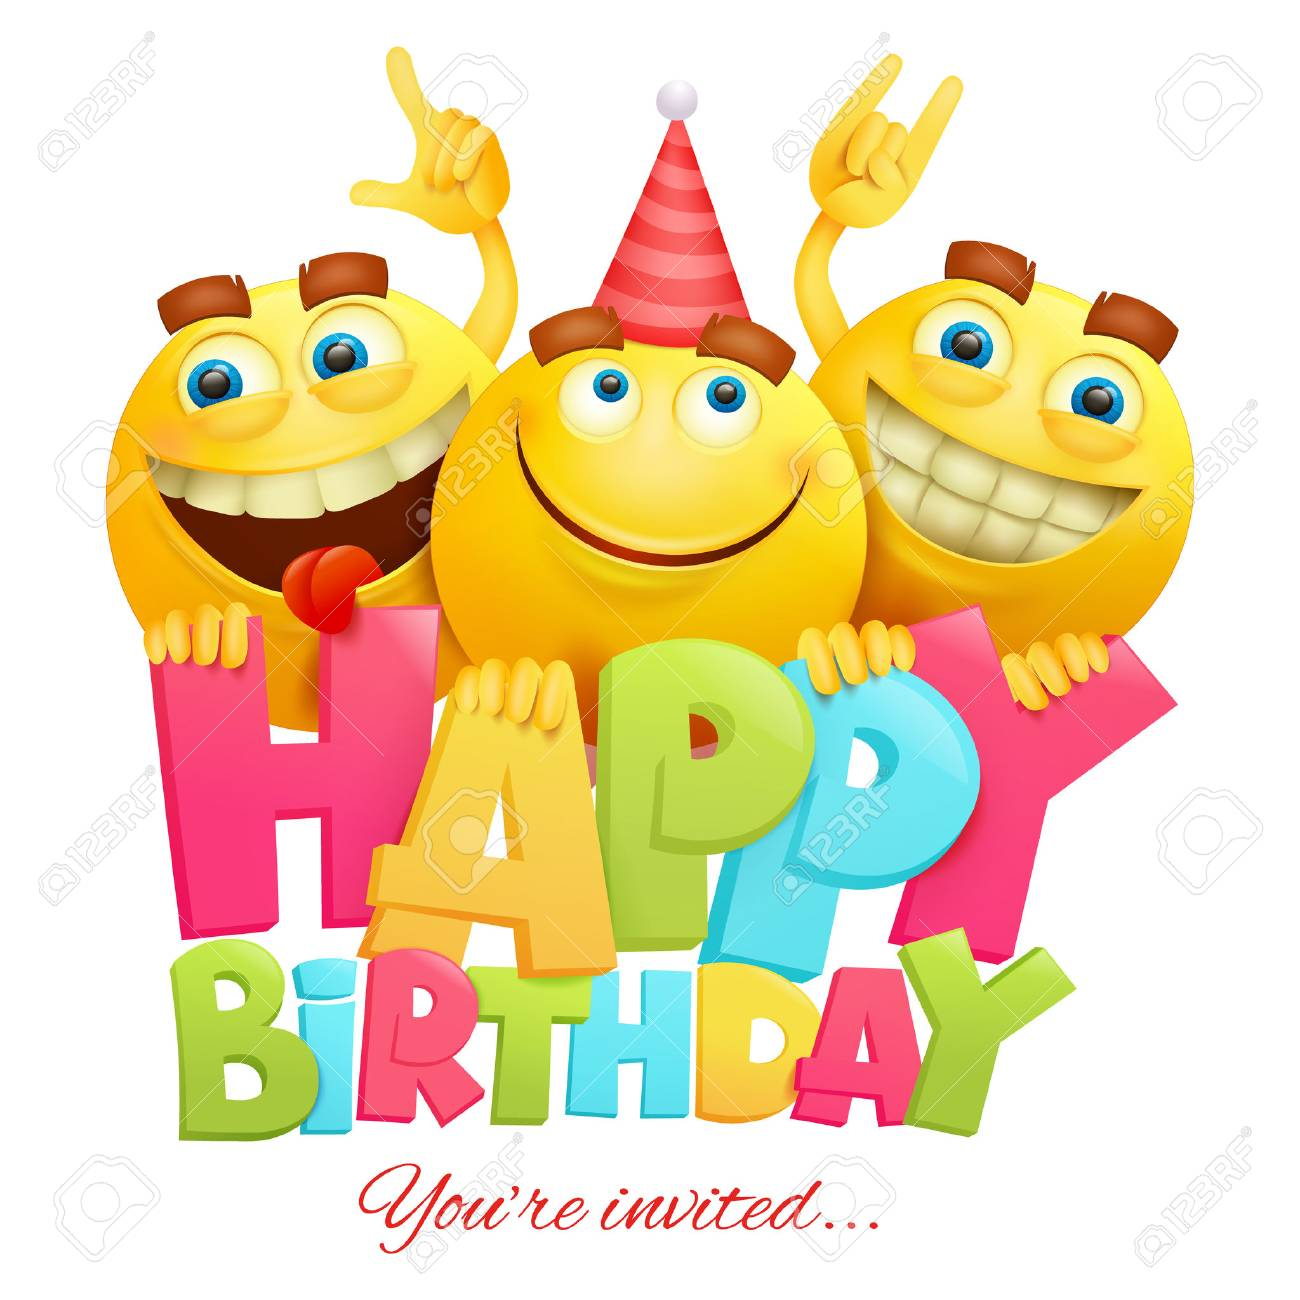 Happy Birthday Invitation Card Template With Three Emoji Characters ...